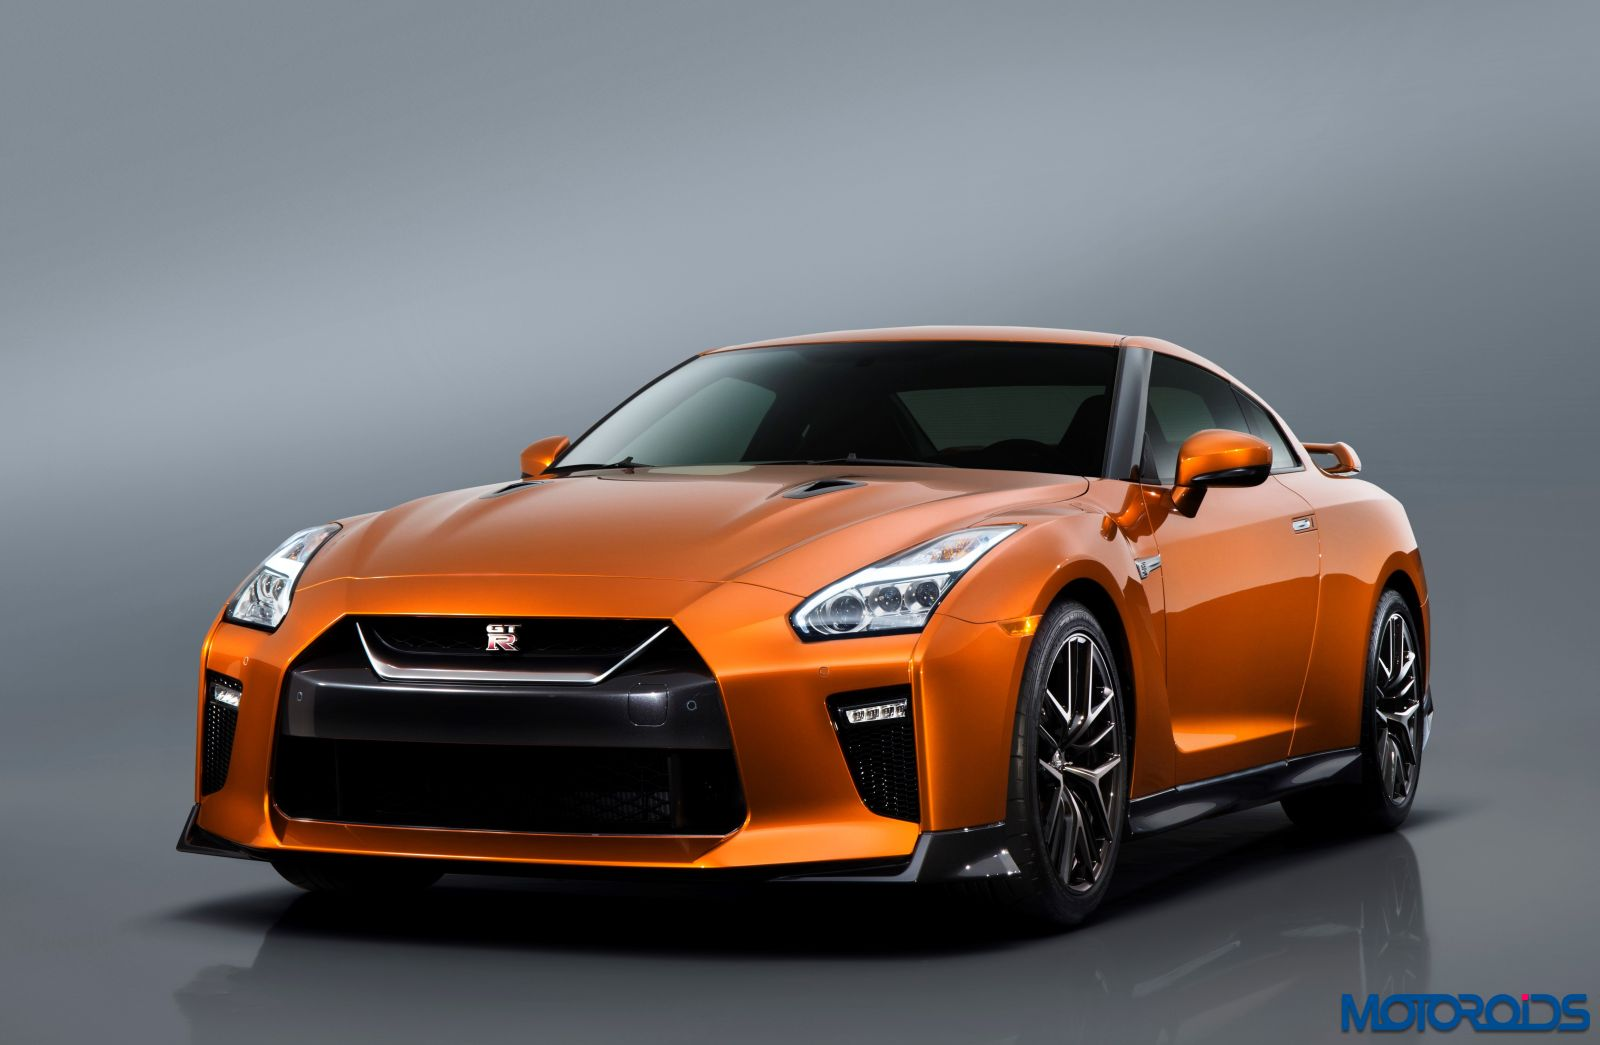 New 2017 Nissan GT-R - Exterior (4)